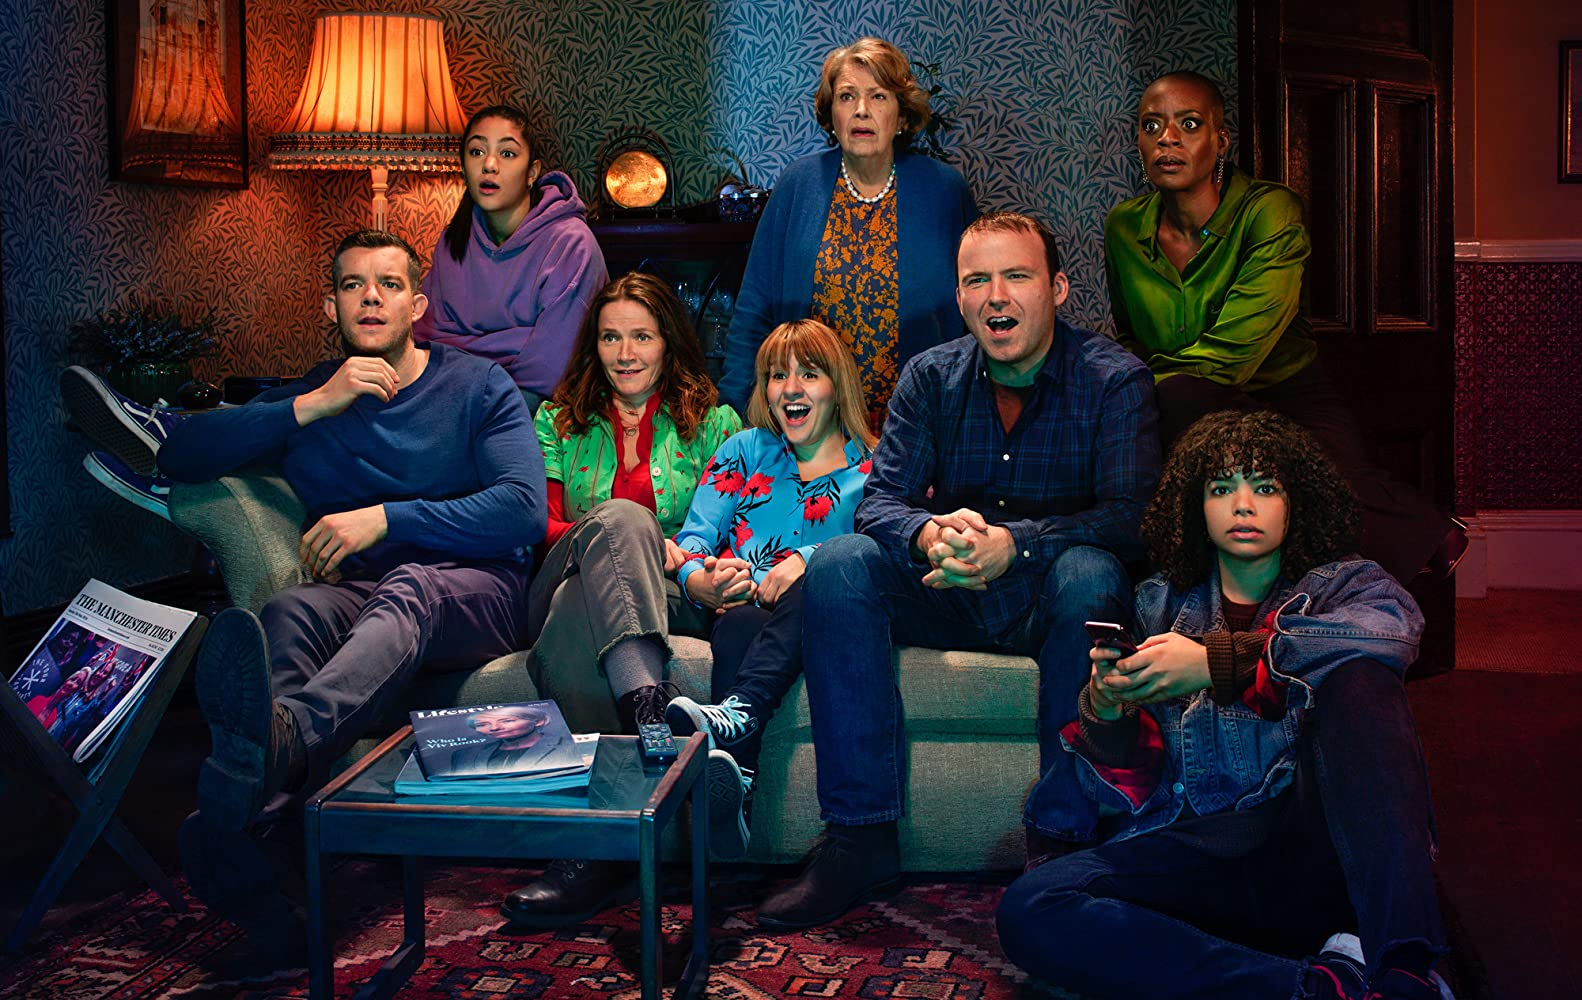 TV SERIES – Years and Years (Russell T. Davies, 2019)